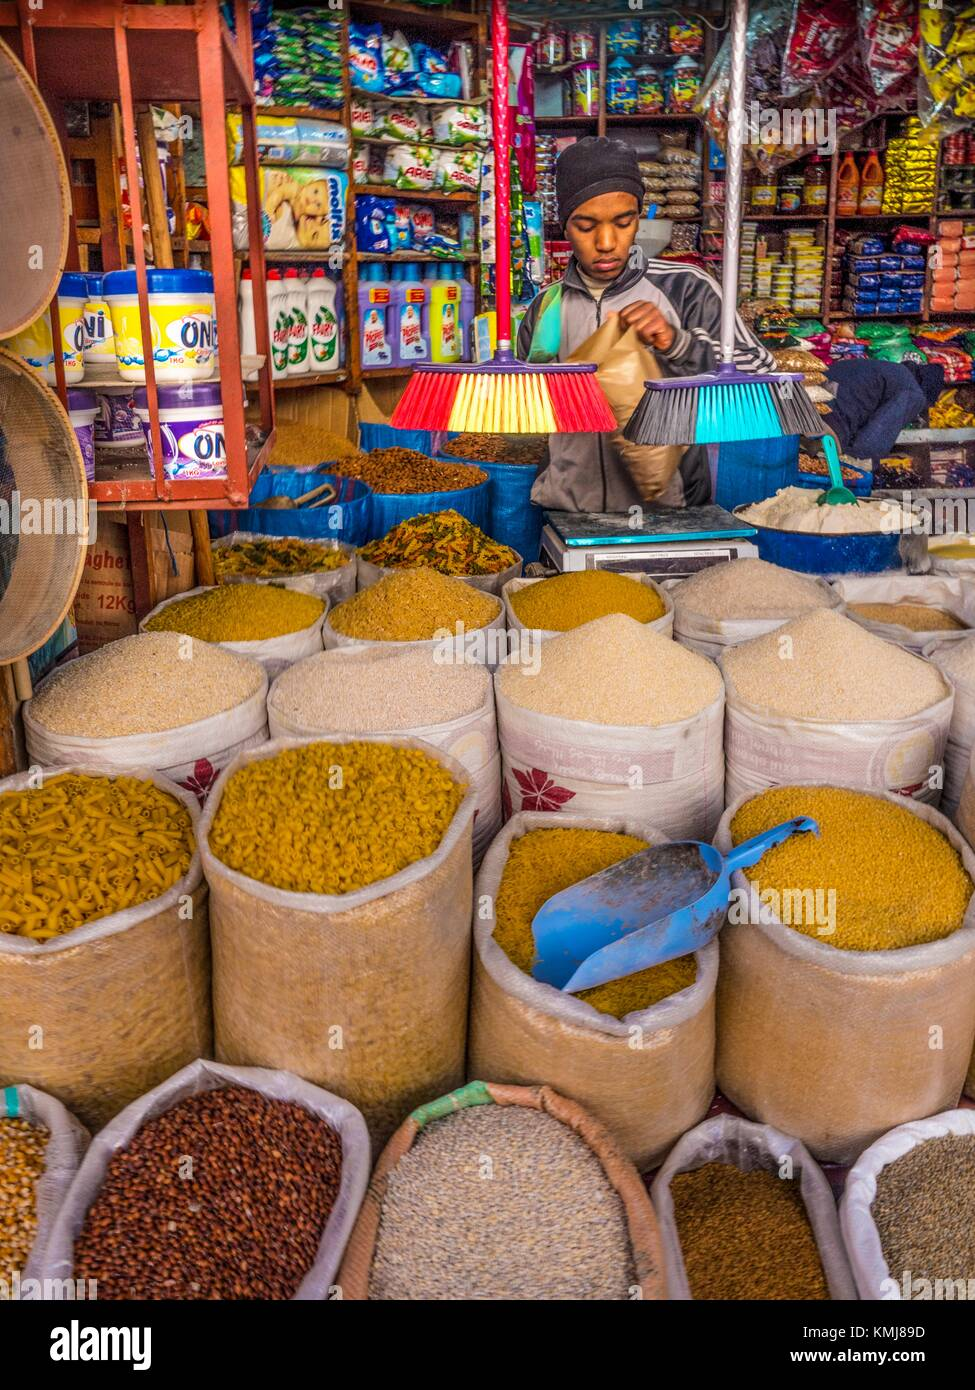 Morocco, Fes, General Store, conducted by a very young man (15-16 years old) in the 'Medina' (old part) - Stock Image